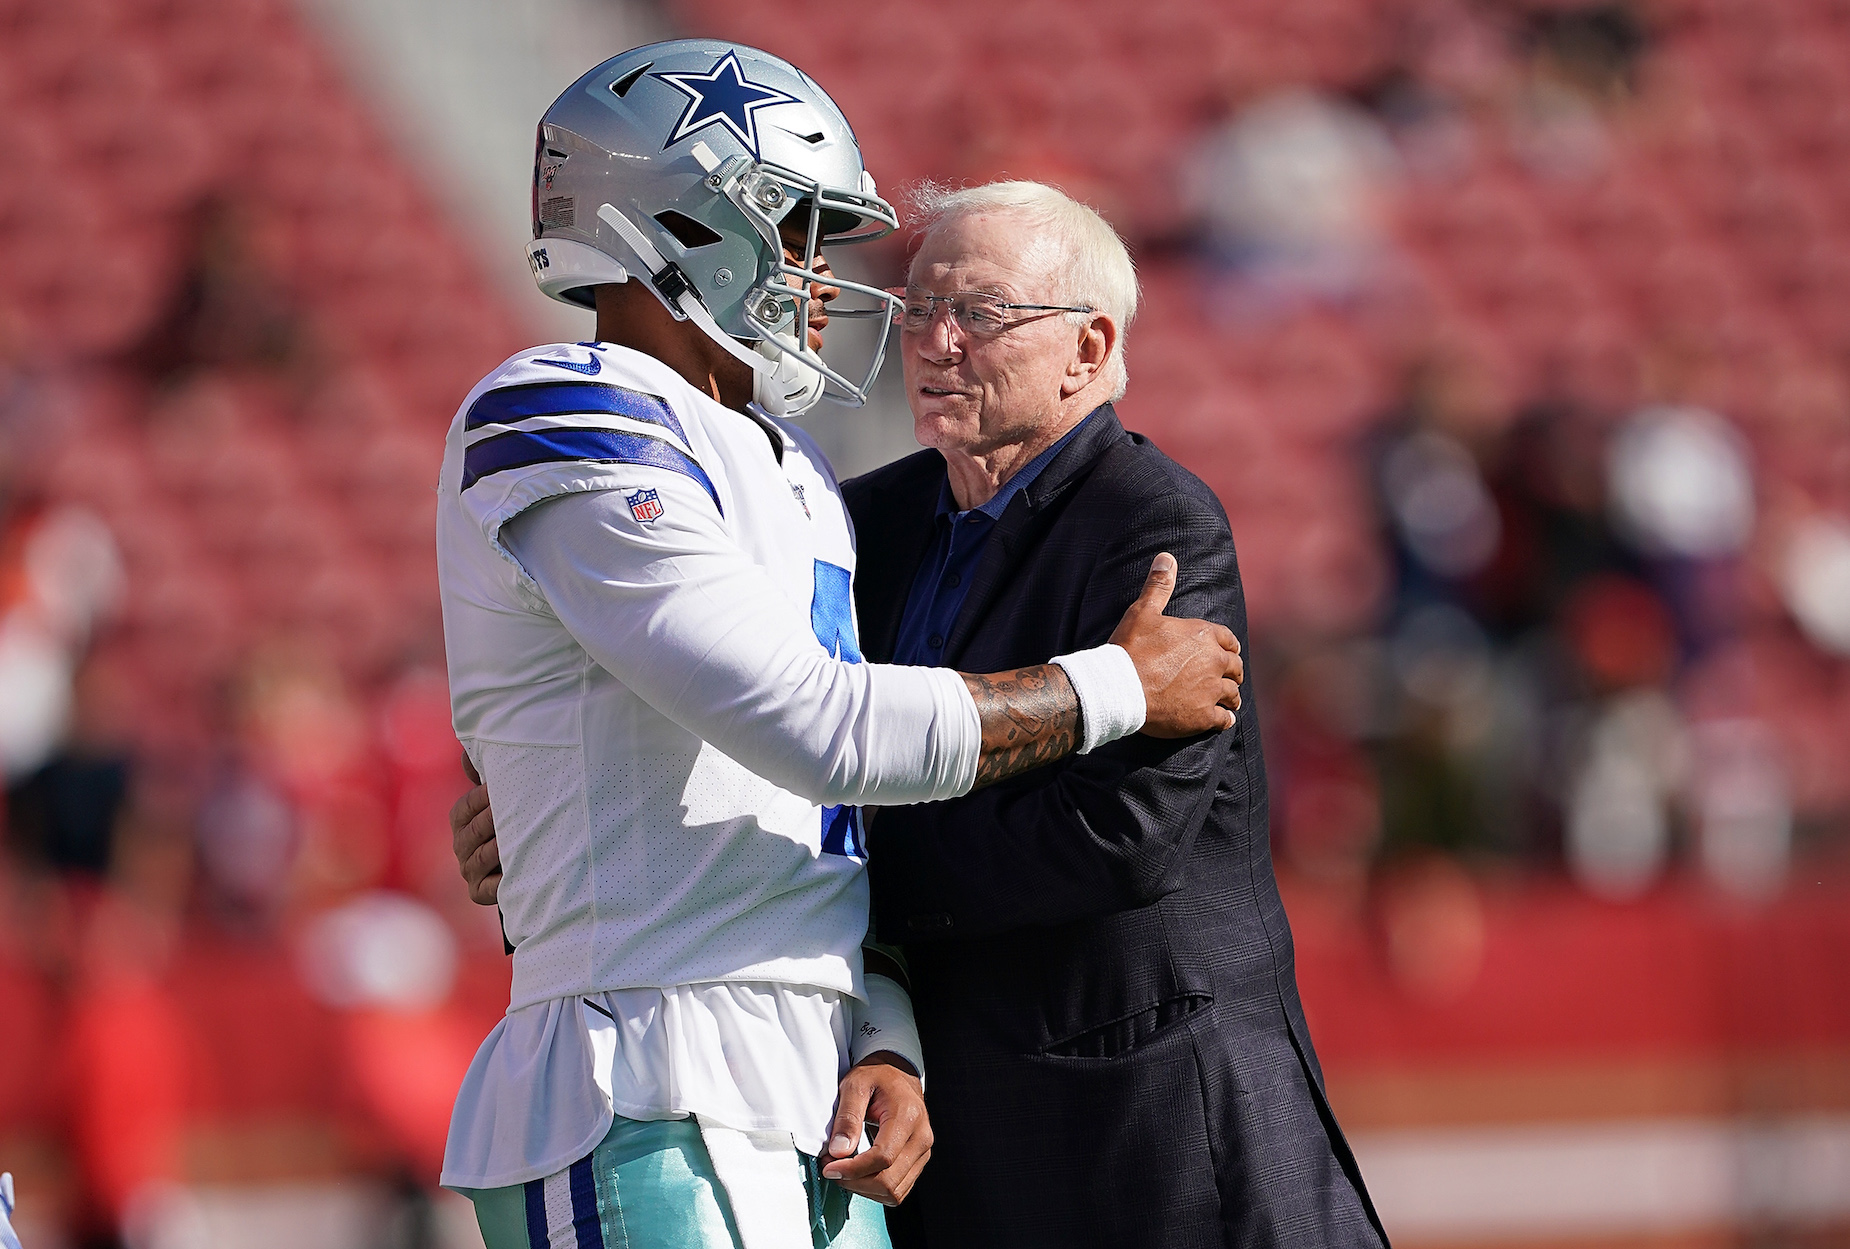 Jerry Jones has made it pretty clear what he thinks about national anthem protests; Dak Prescott, however, seems to have something different in mind.